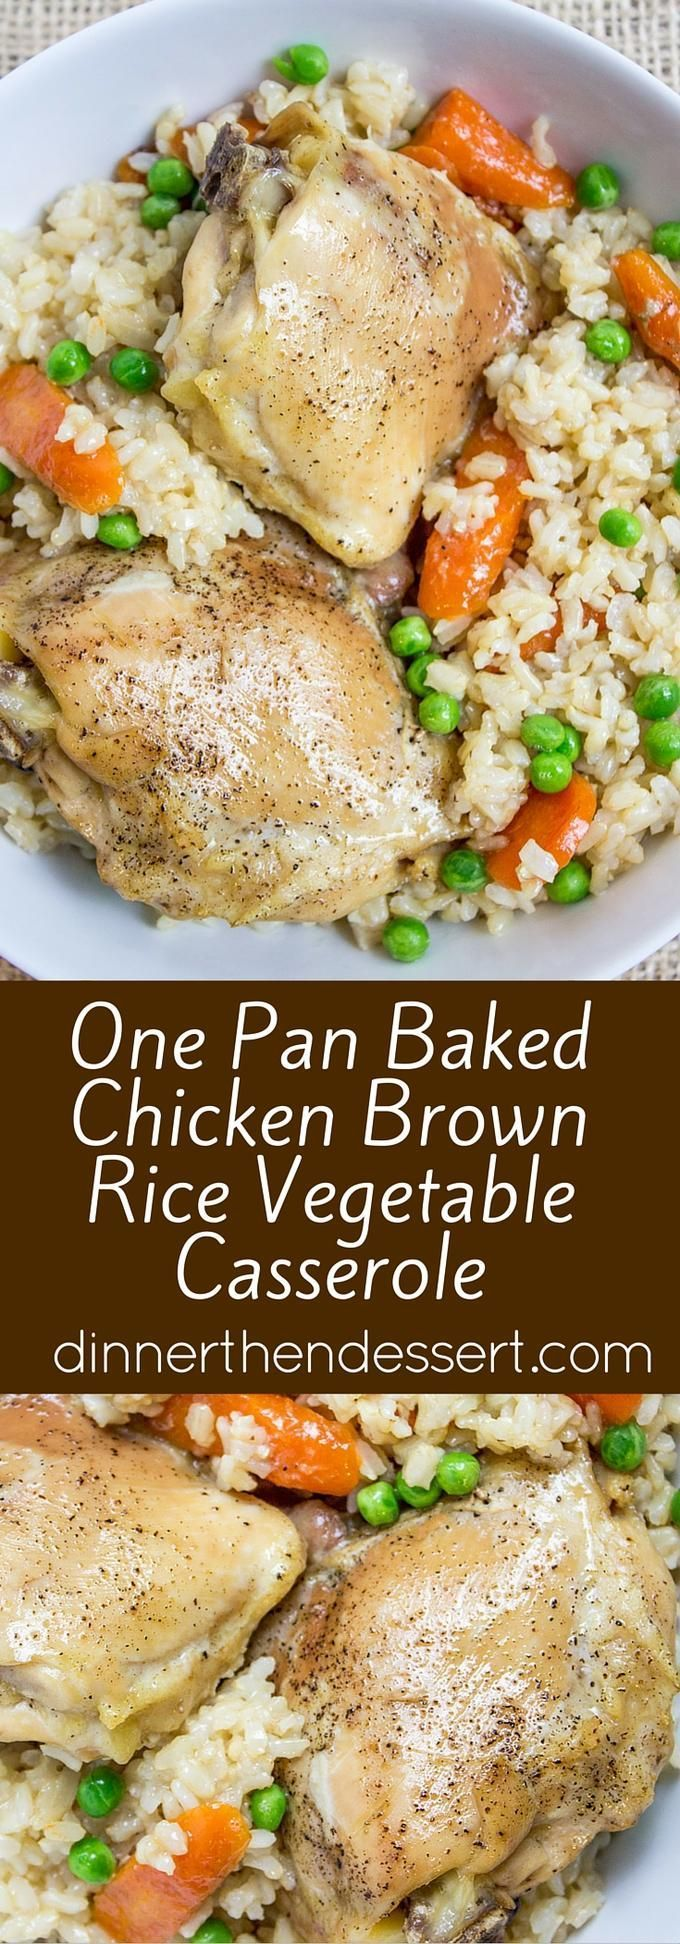 One Pan Baked Chicken Brown Rice Vegetable Casserole, served with Carrots and Peas, is healthy, flavorful and involves almost no clean-up!